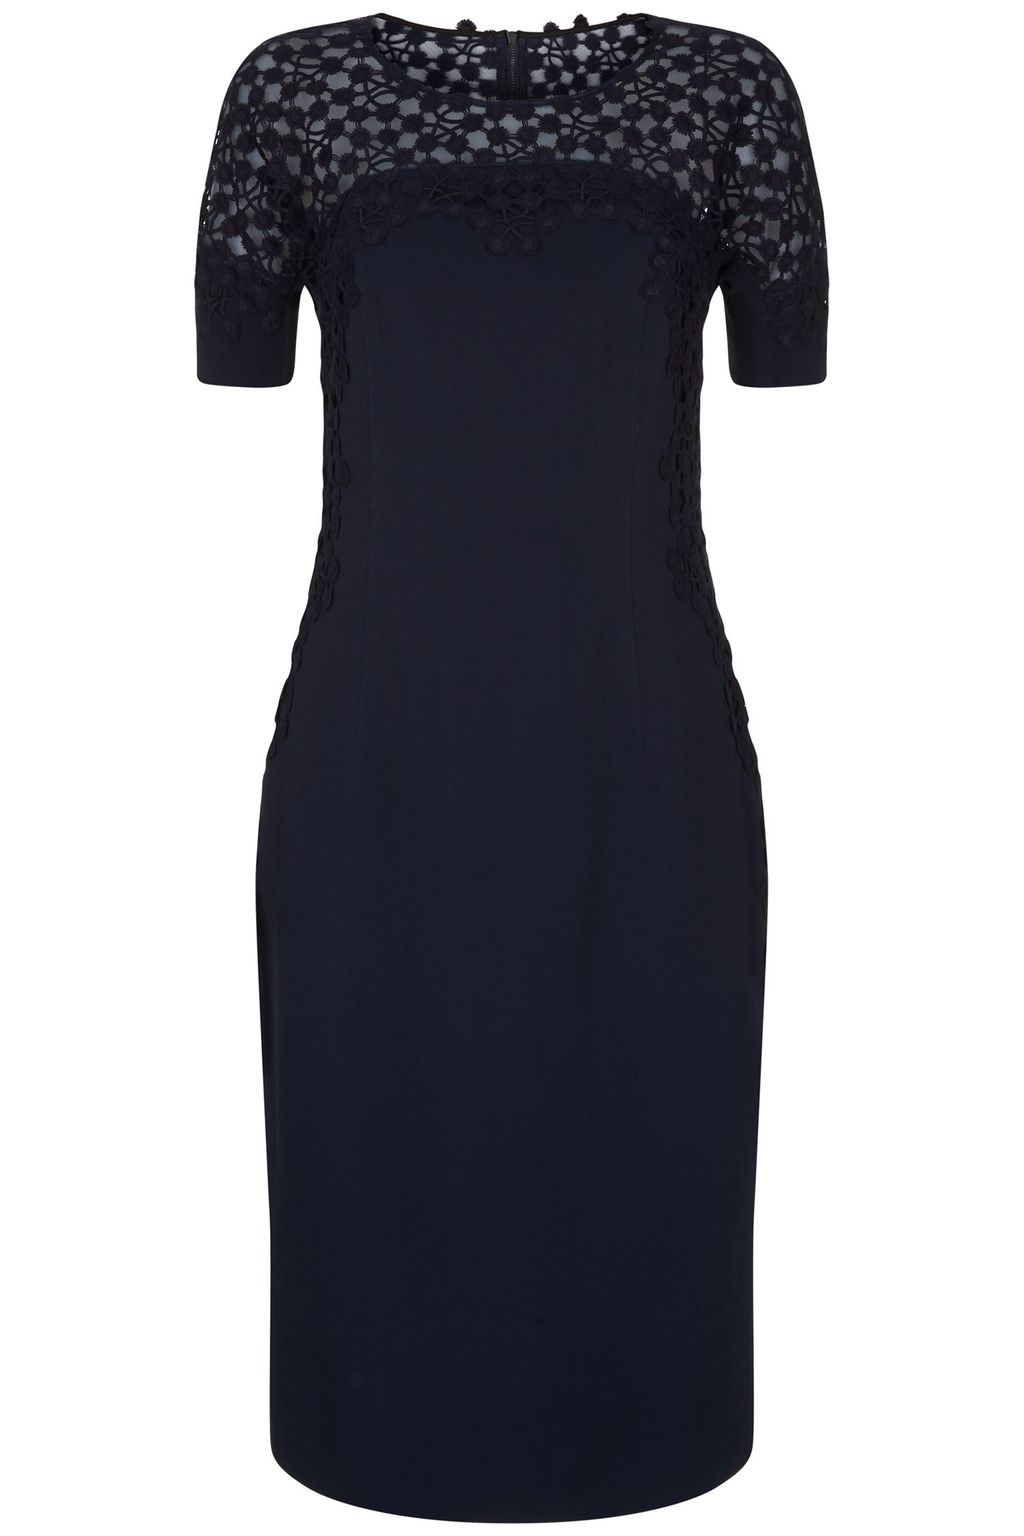 Mara Dress, Navy - style: shift; fit: tailored/fitted; pattern: plain; bust detail: sheer at bust; predominant colour: navy; occasions: evening; length: on the knee; fibres: polyester/polyamide - 100%; neckline: crew; sleeve length: short sleeve; sleeve style: standard; pattern type: fabric; texture group: other - light to midweight; season: s/s 2016; wardrobe: event; embellishment: contrast fabric; embellishment location: hip